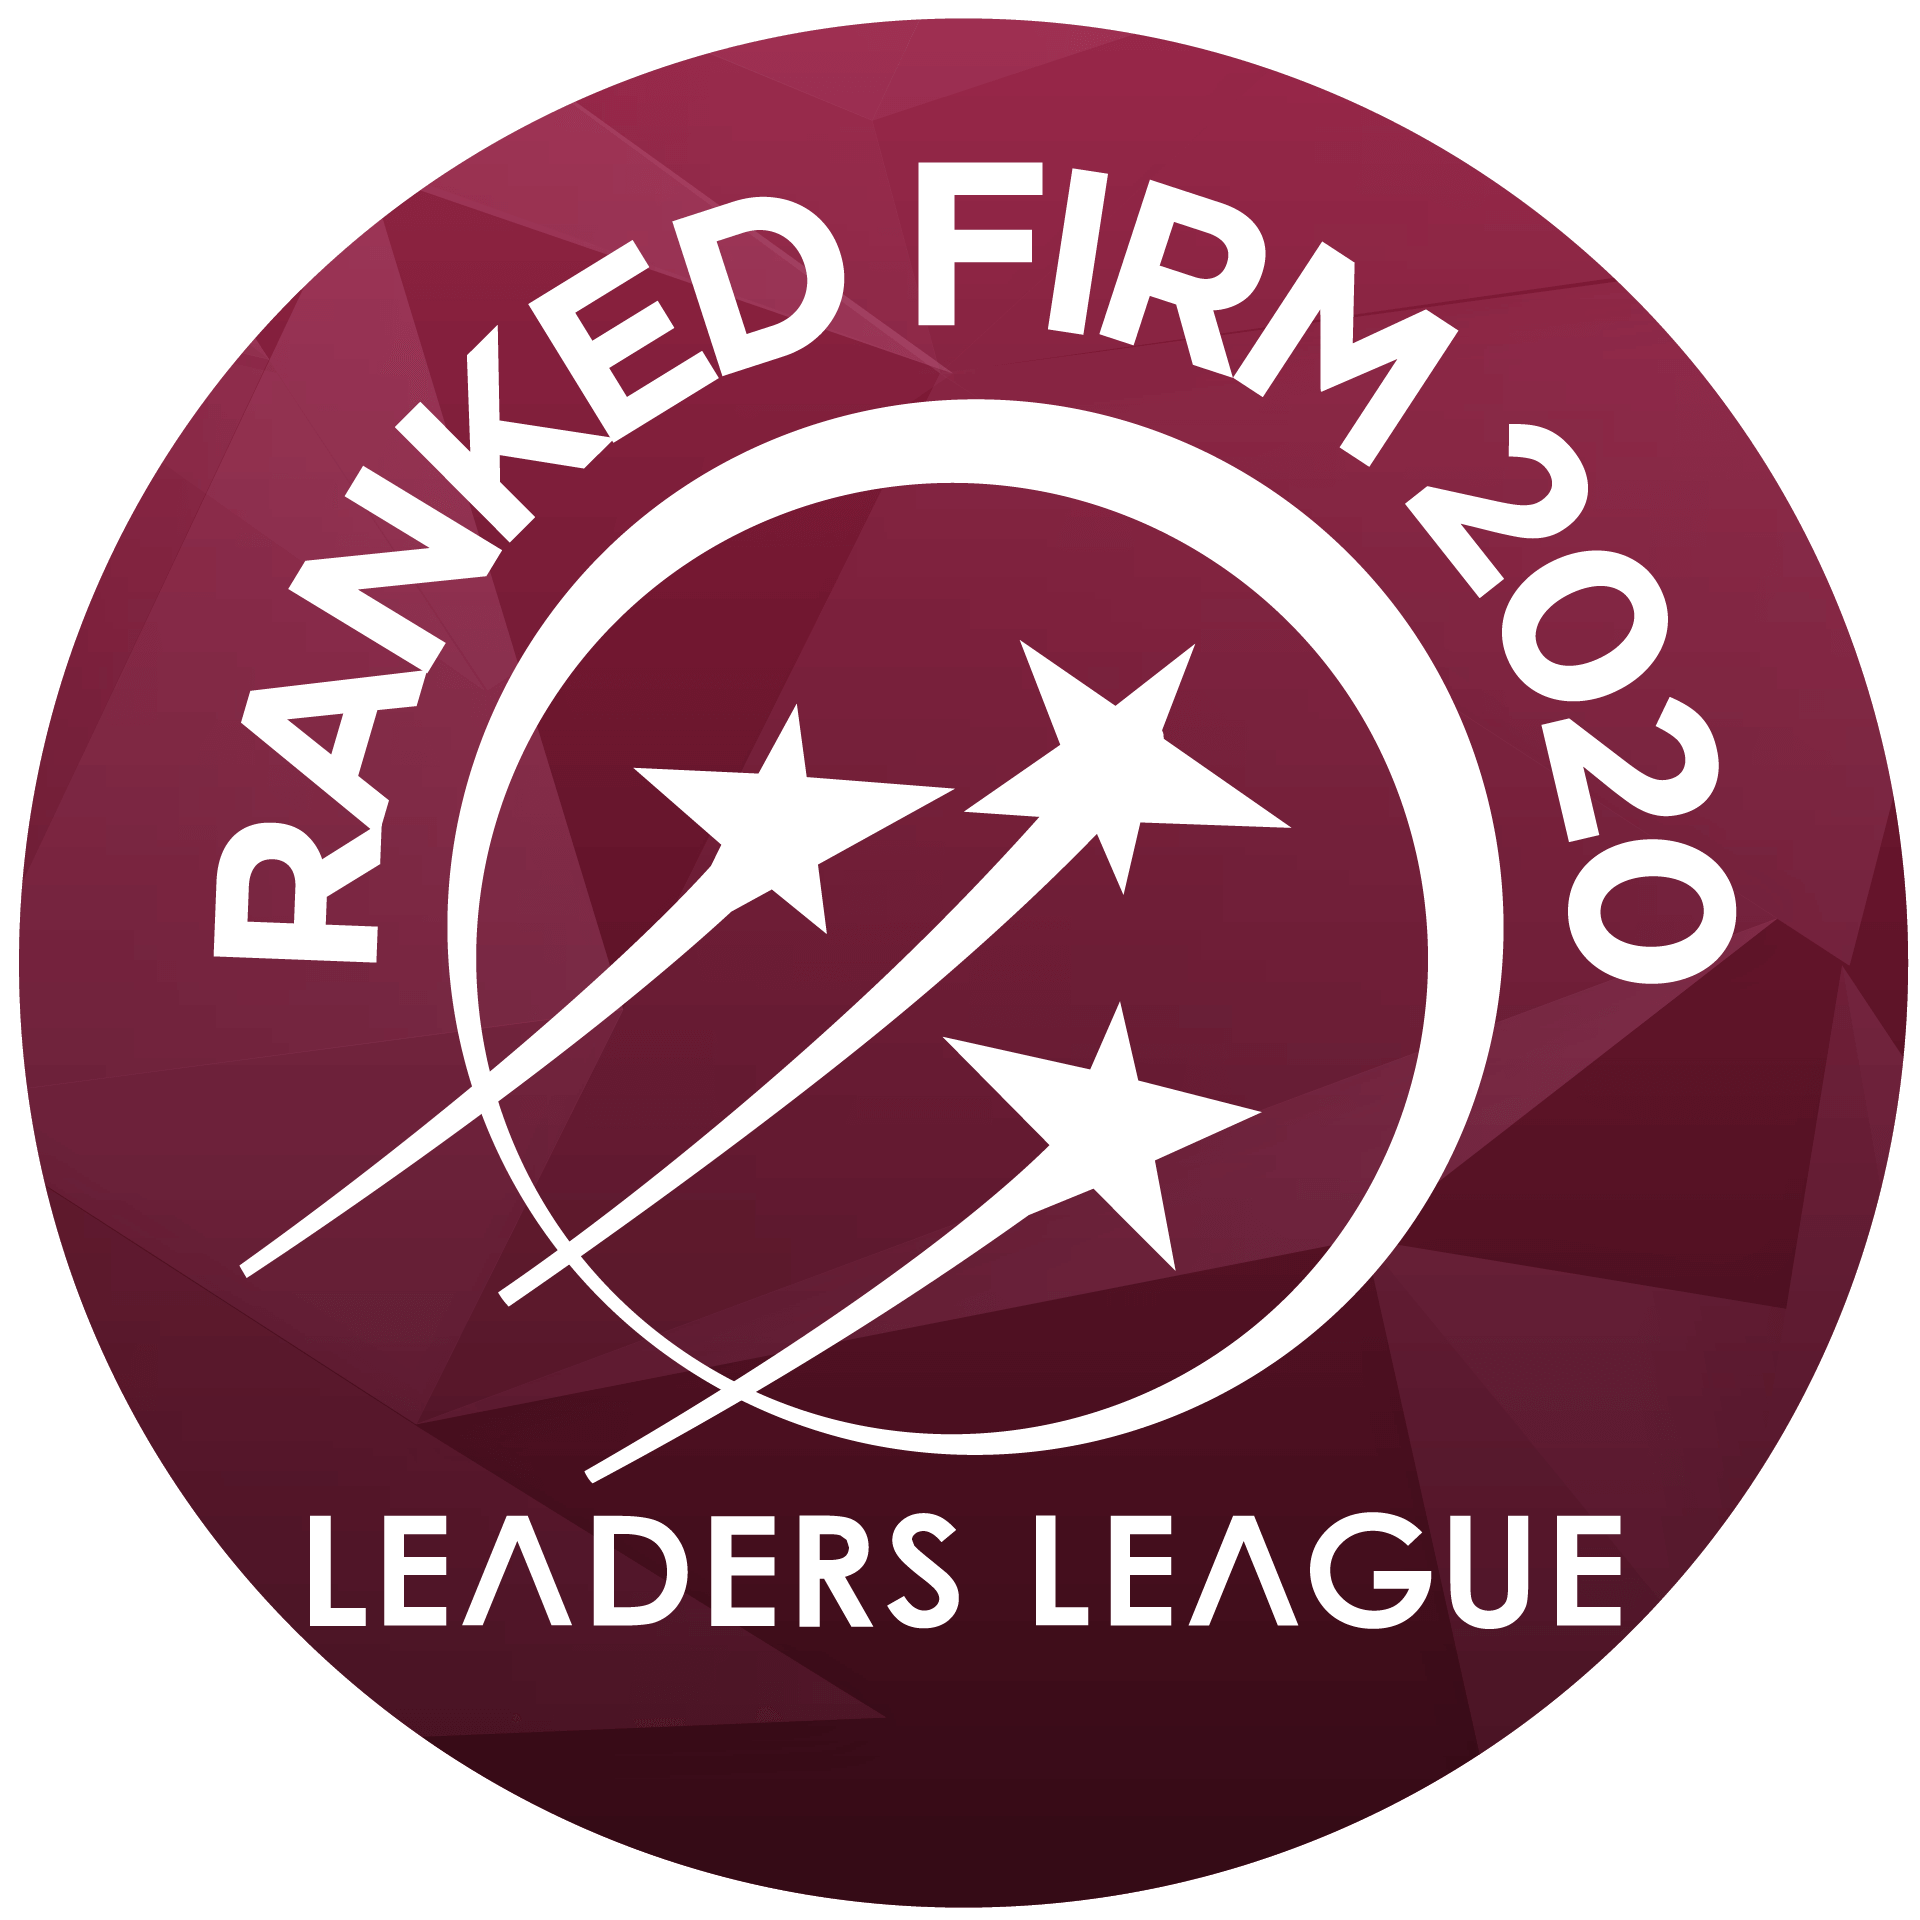 Ranked-Firm-2020-Leaders-League